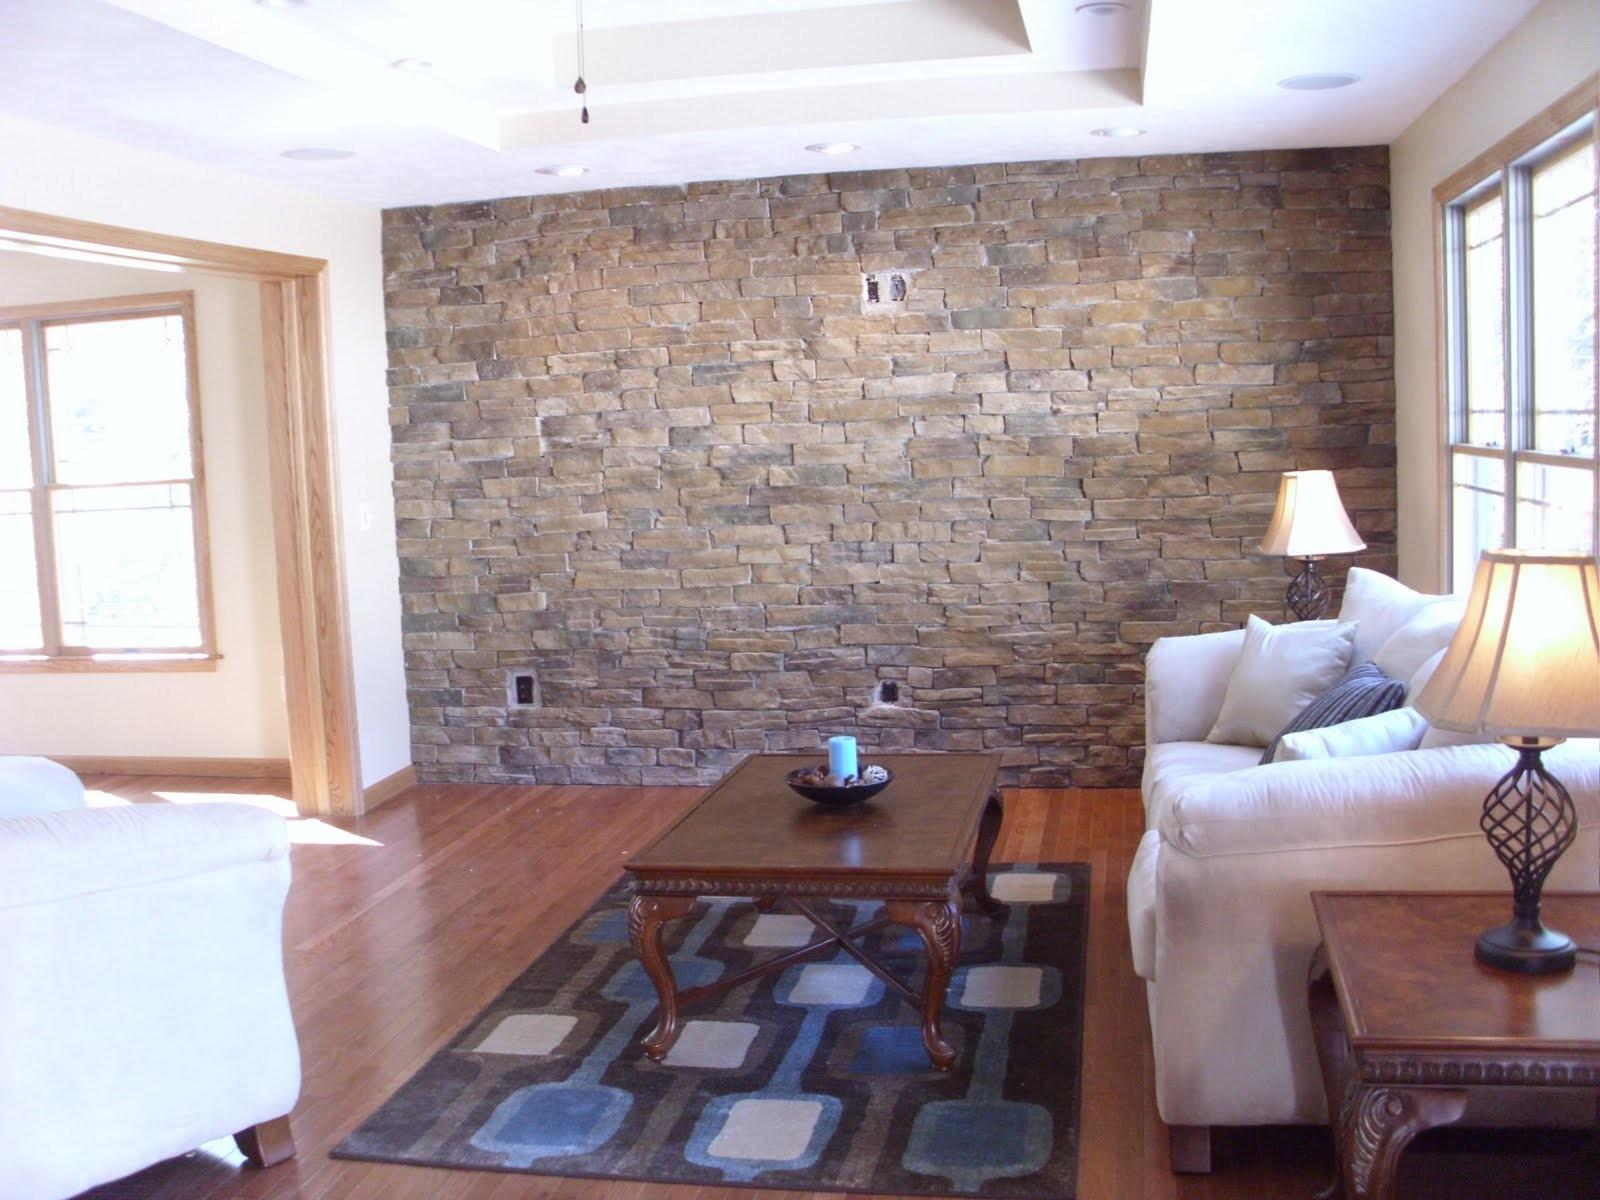 Intra Design Rustic Spaces Rate Space